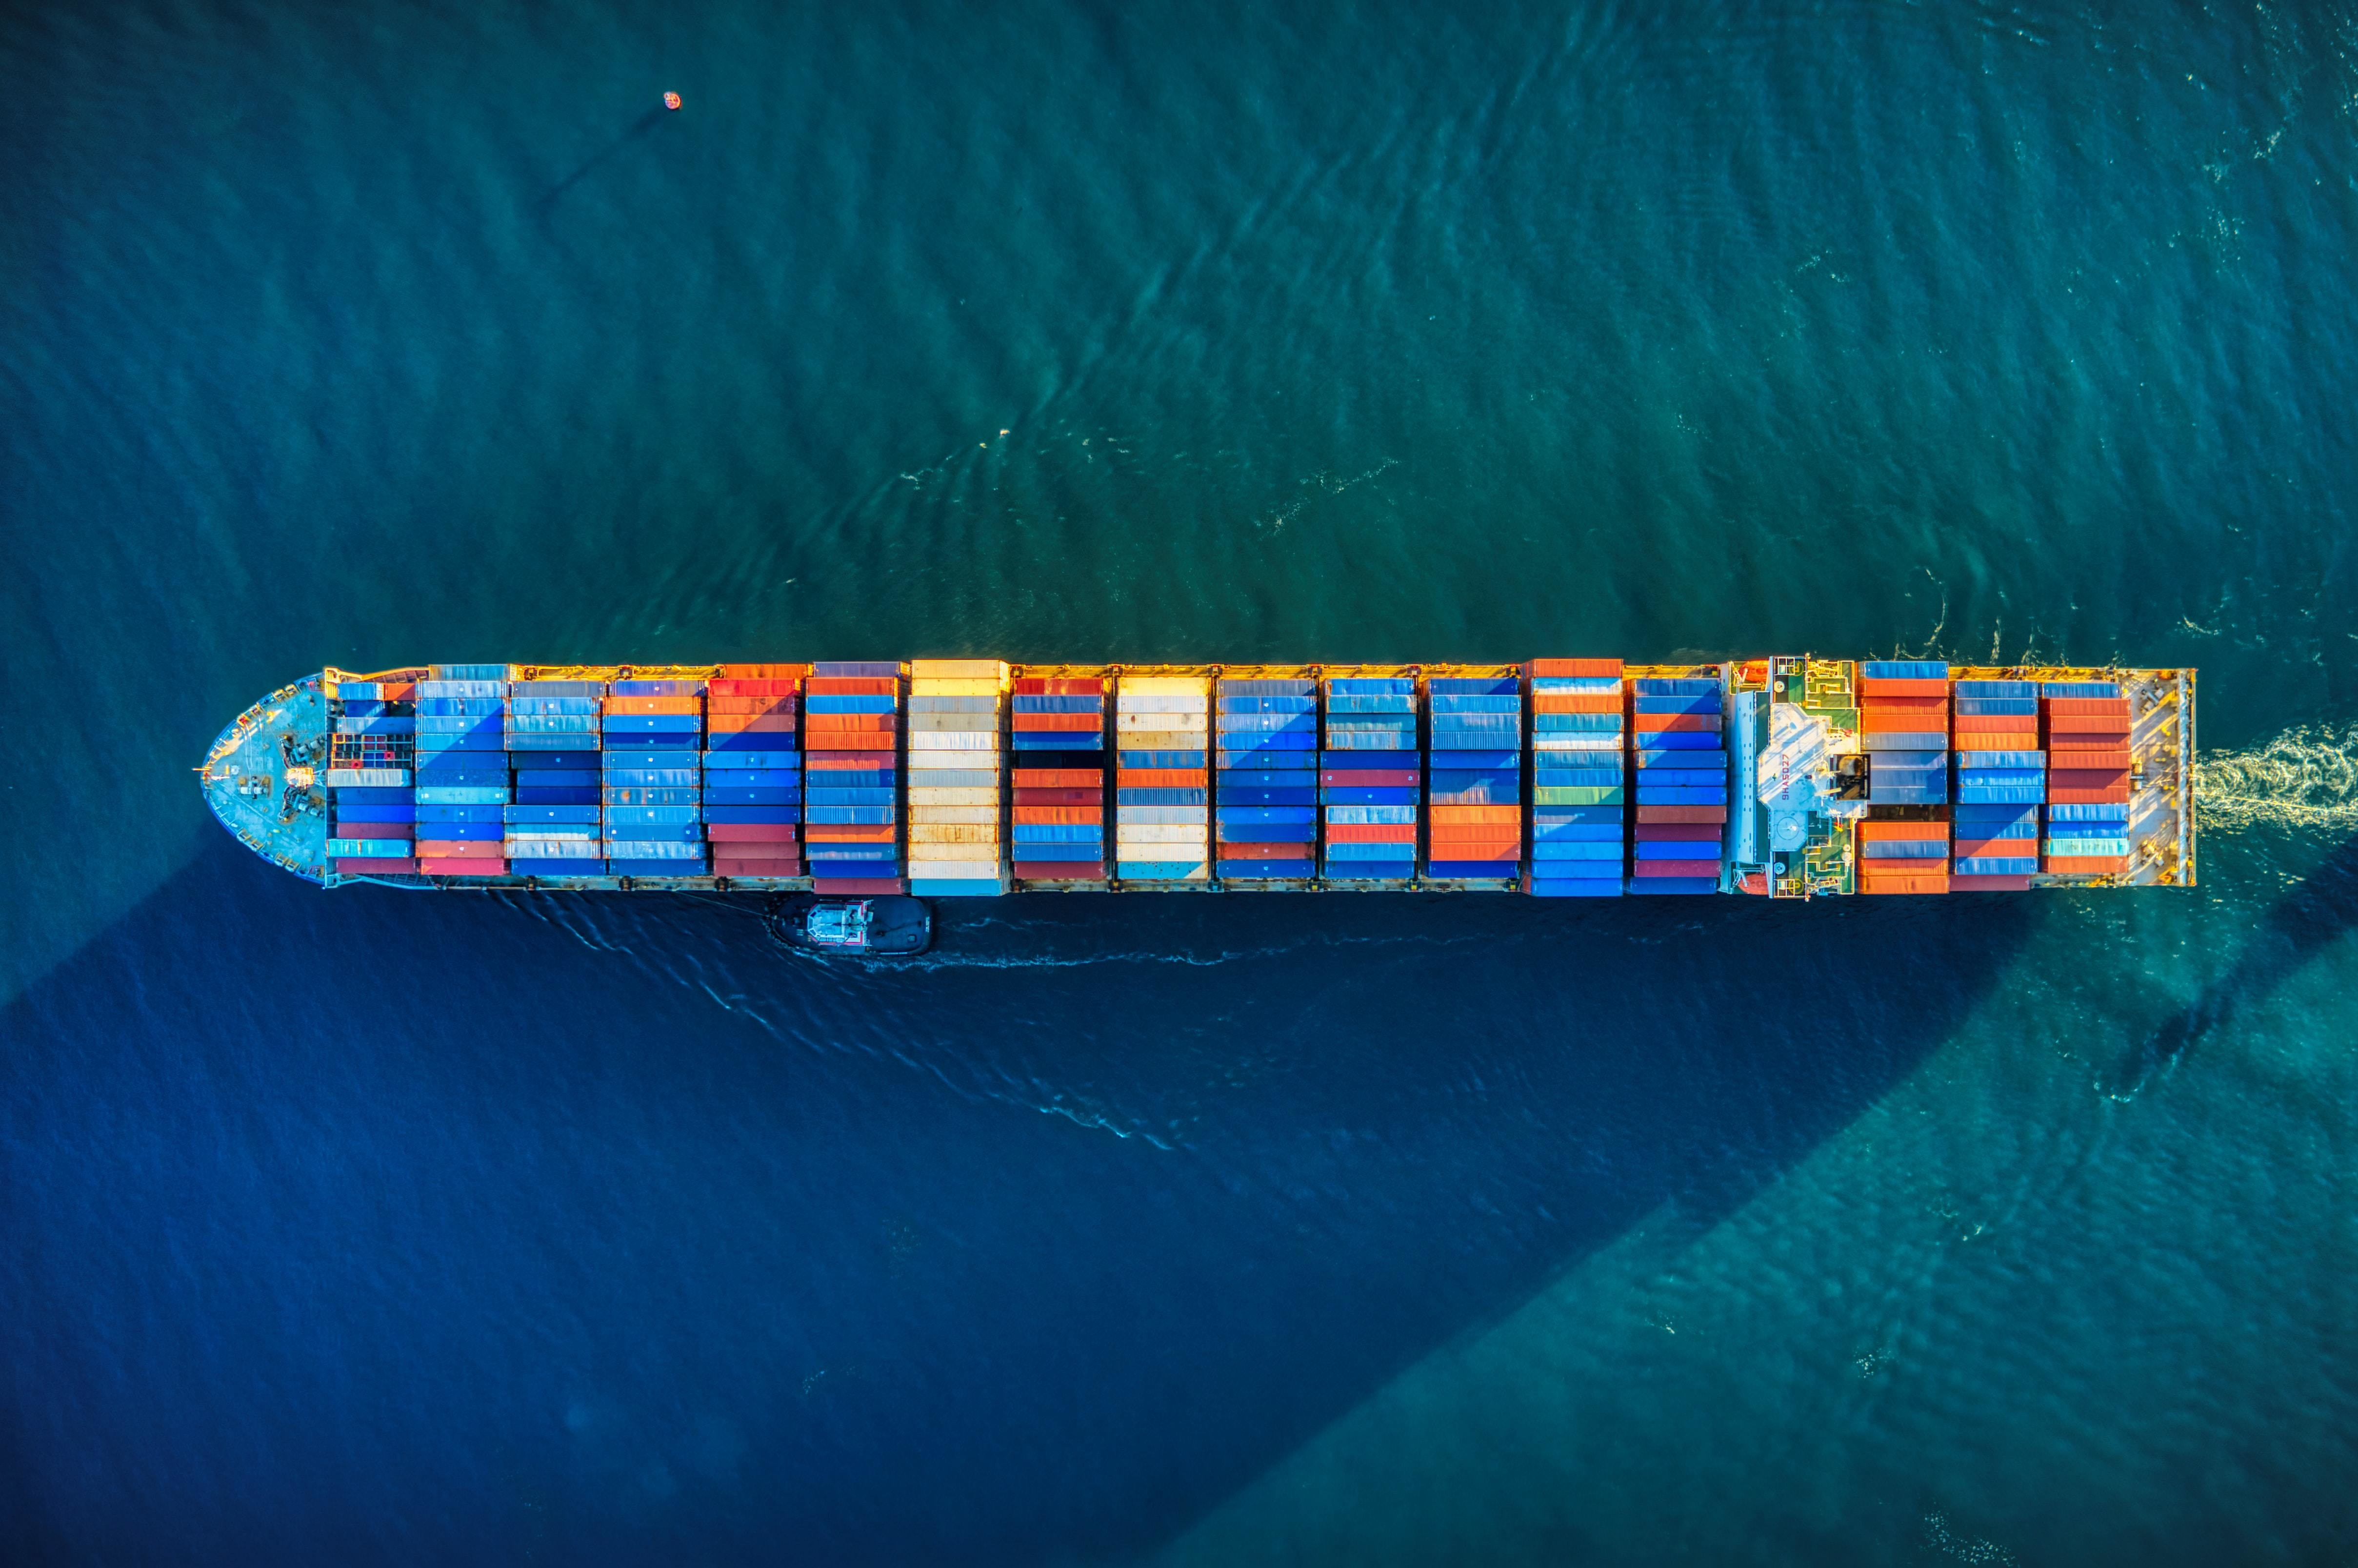 Ship carrying containers in the sea.